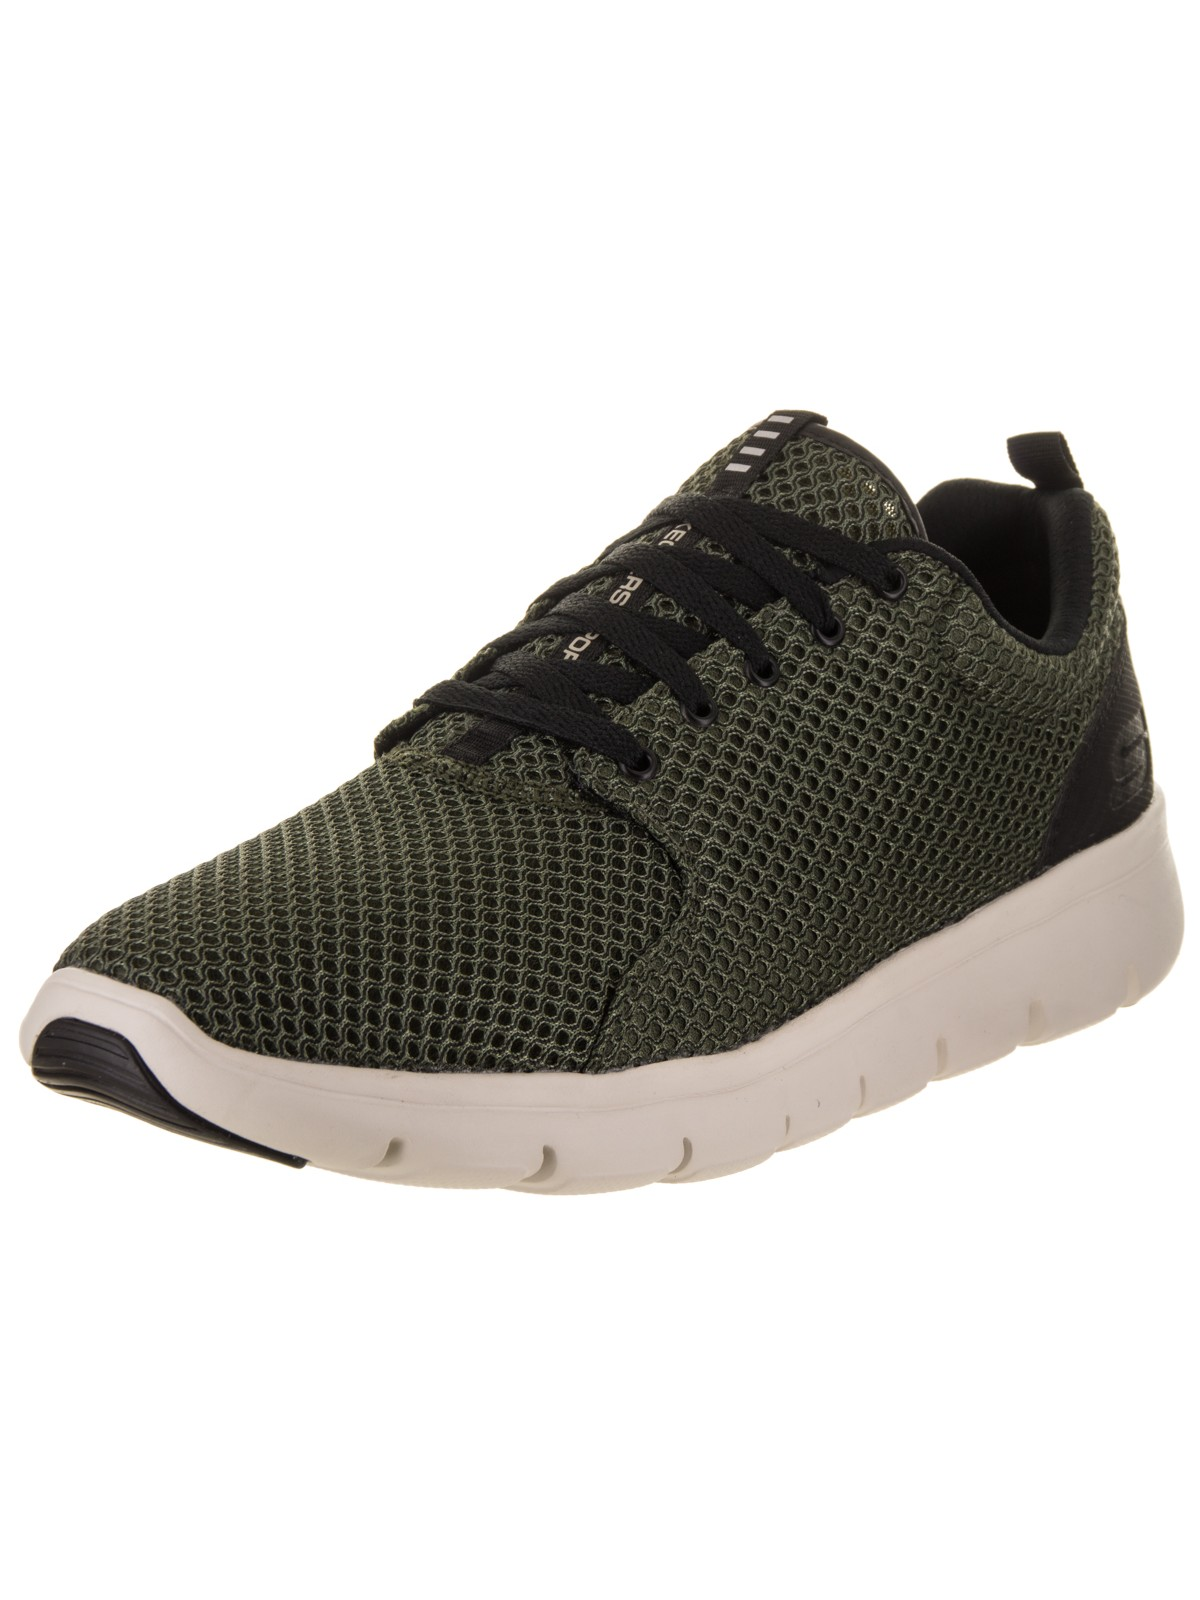 Skechers Men's Marauder Training Shoe